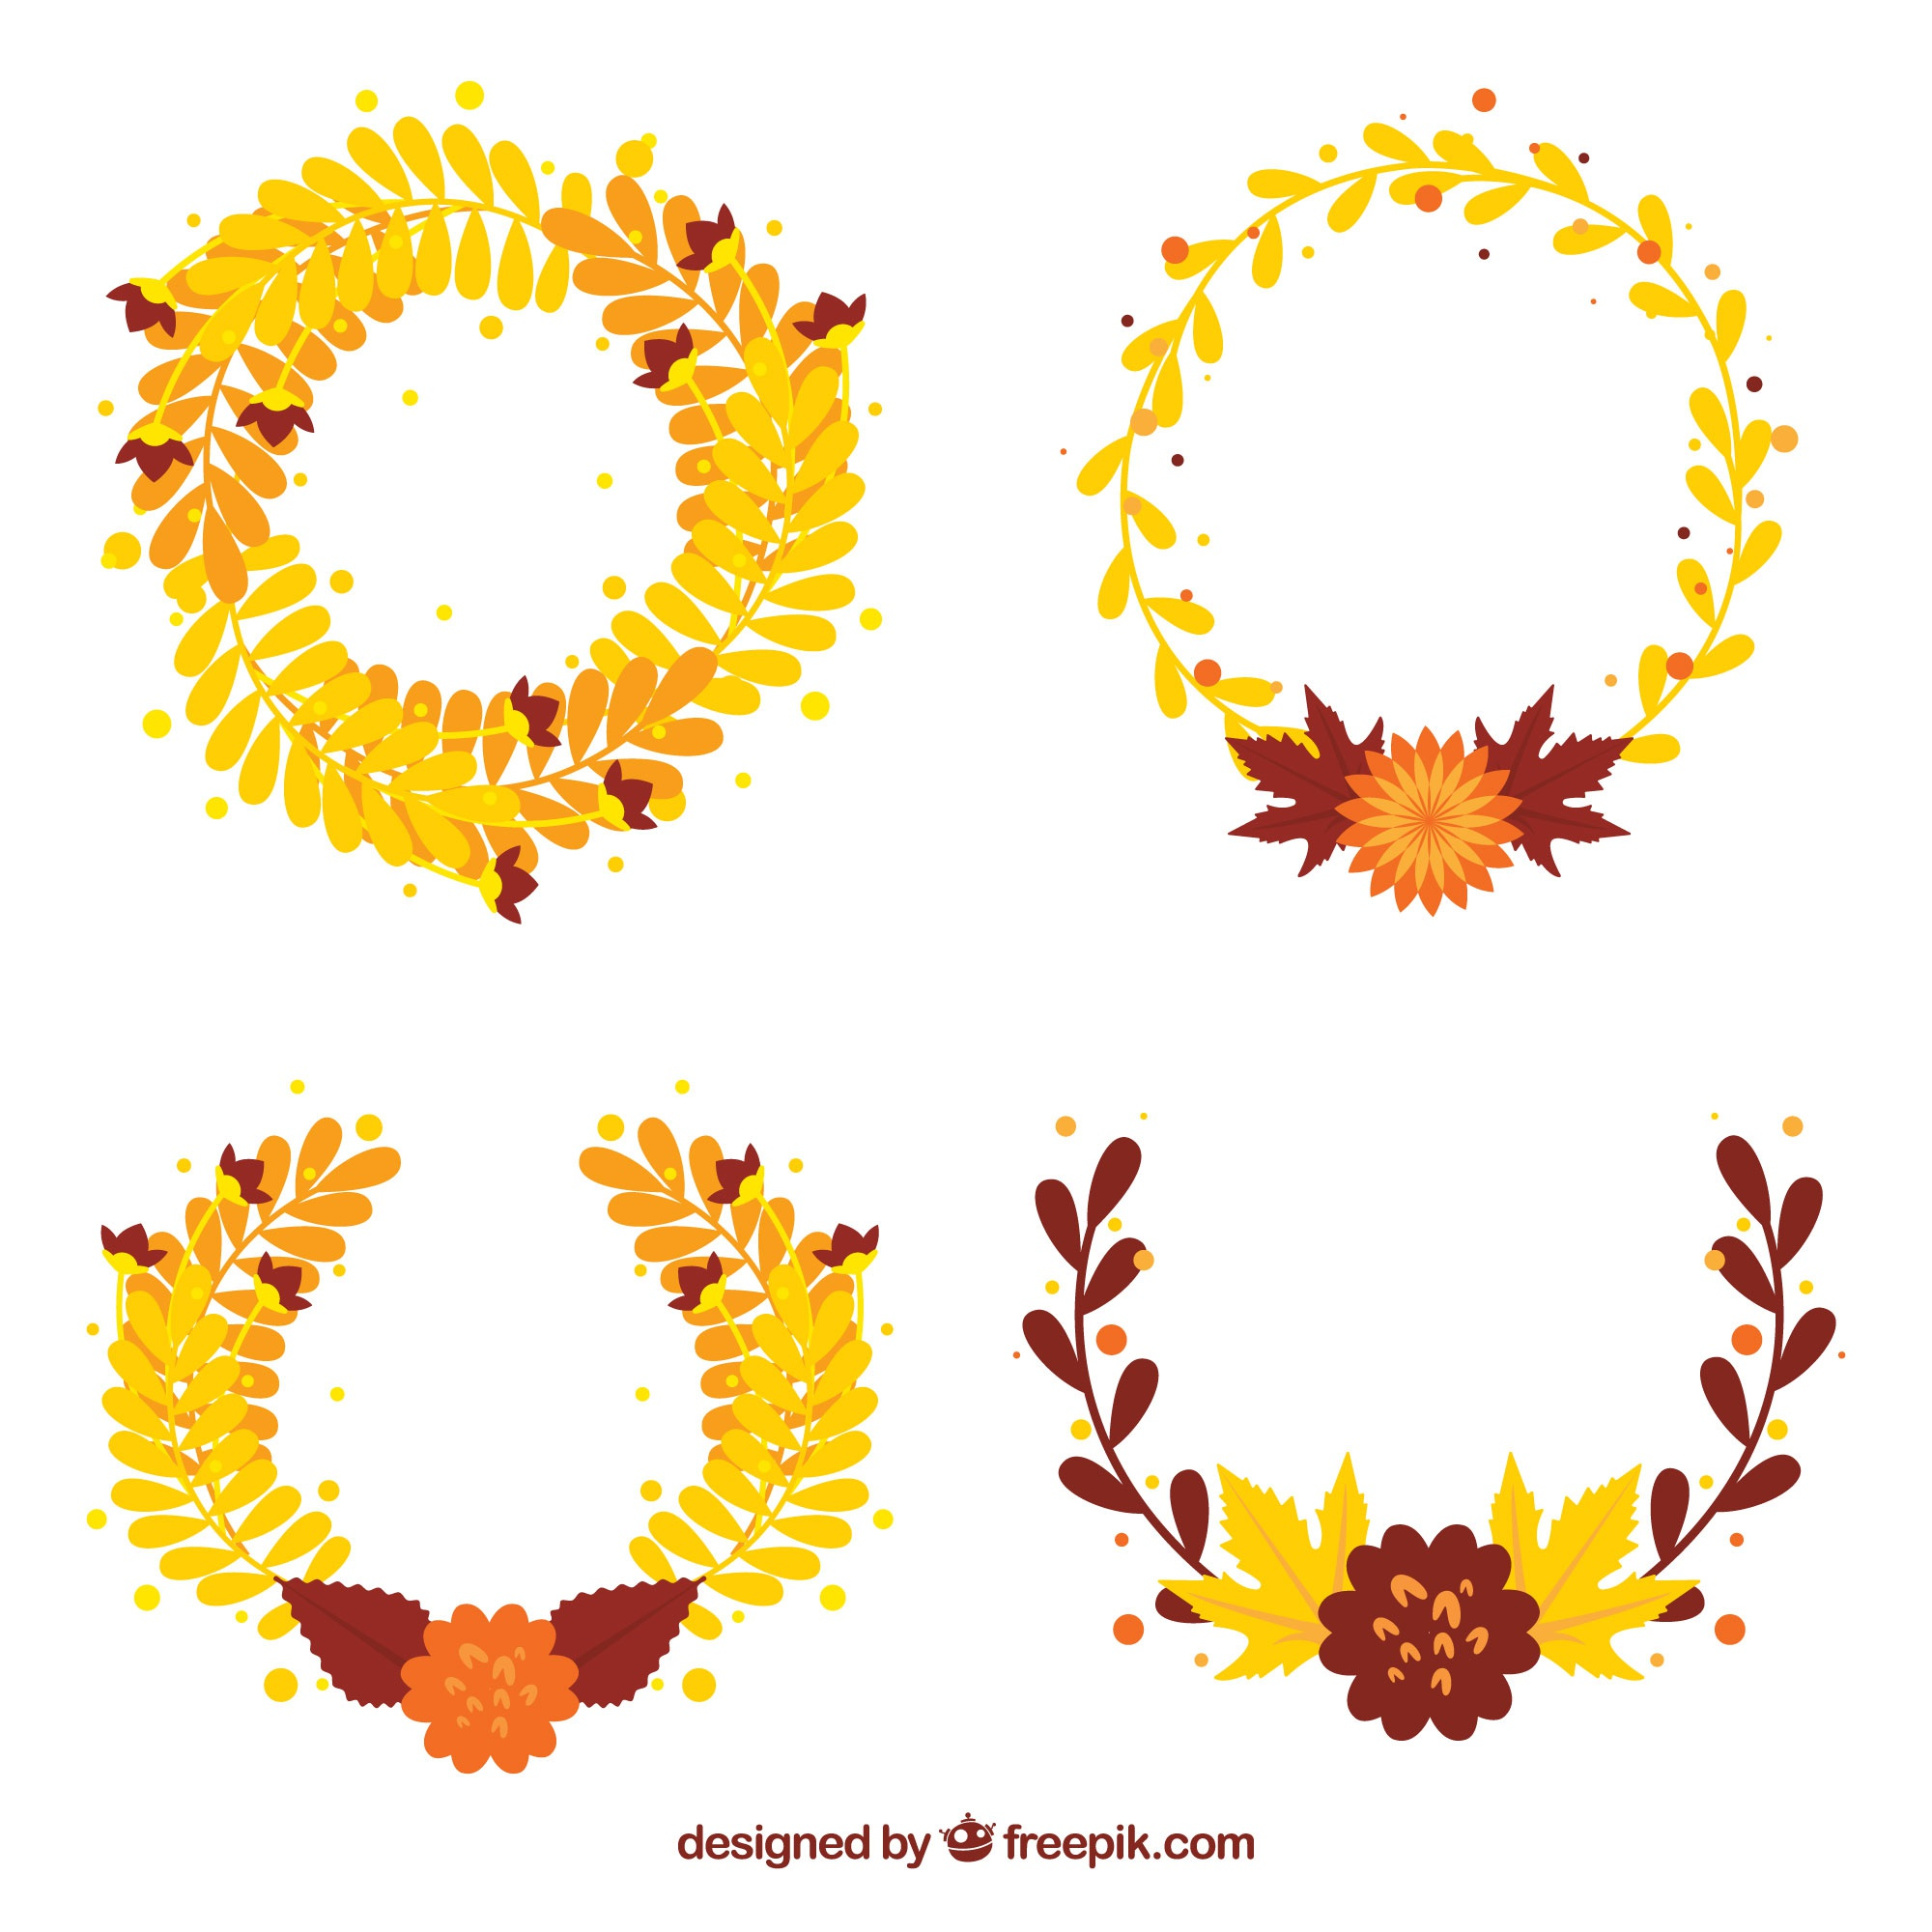 Elegant decorative autumn wreaths